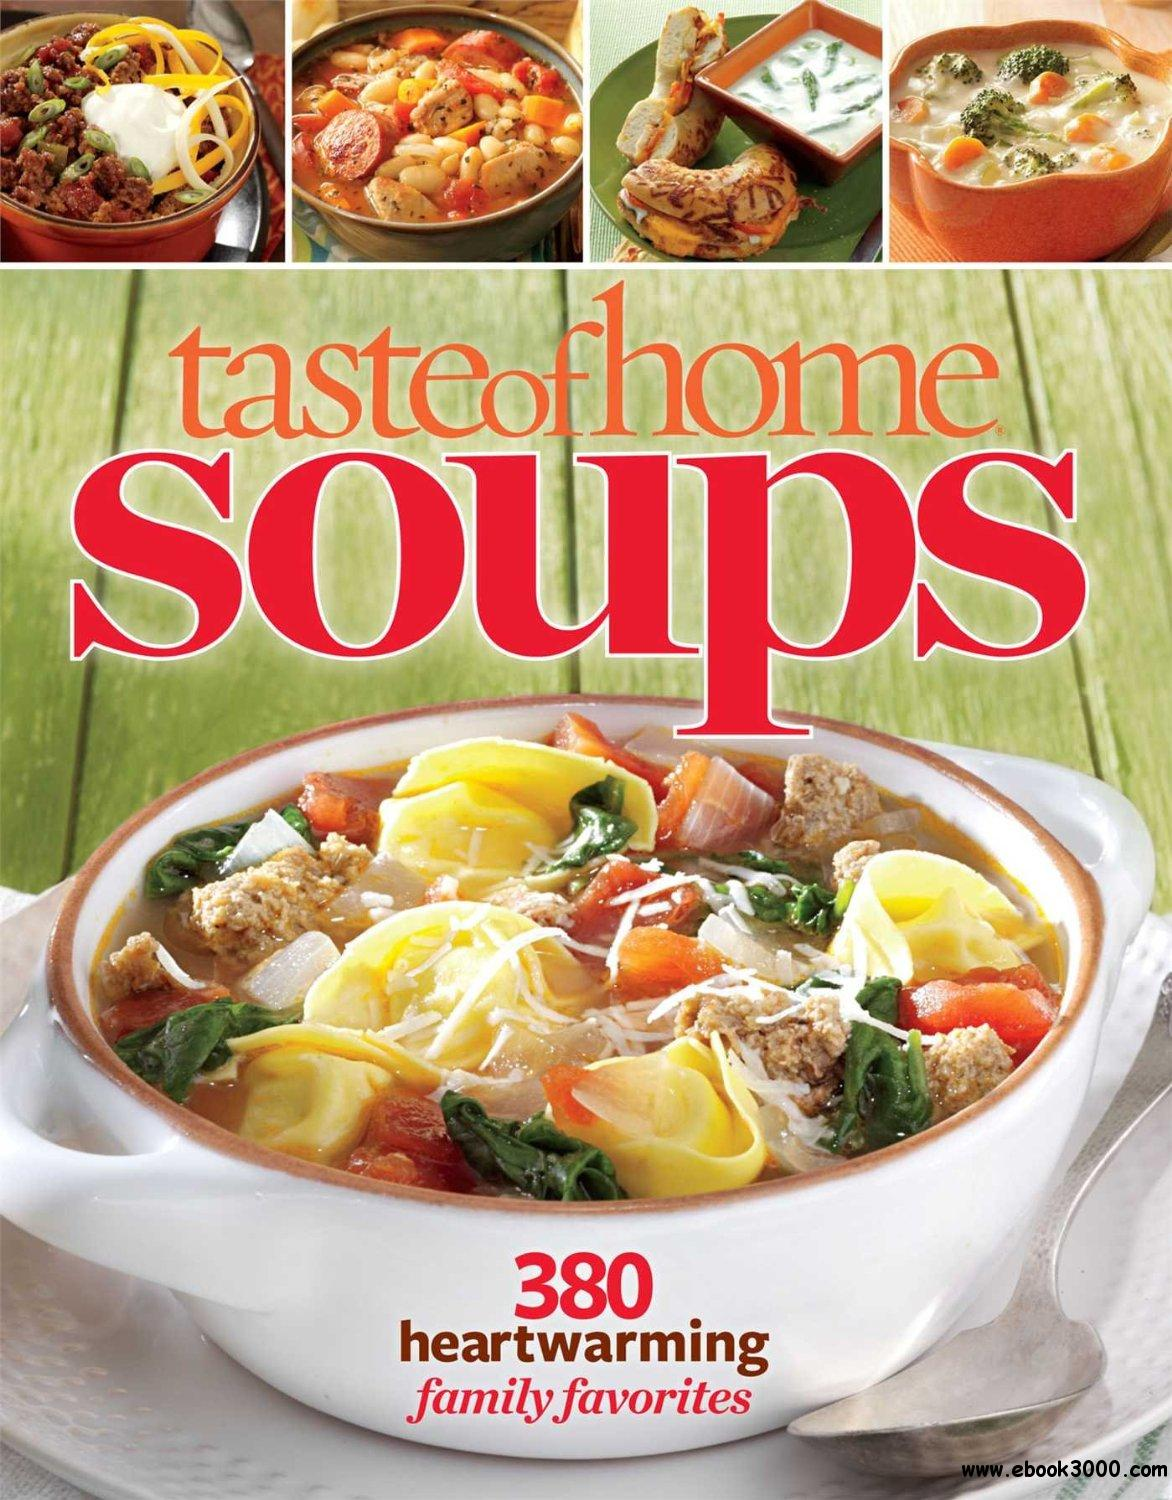 Taste of Home Soups: 431 Hot & Hearty Classics free download